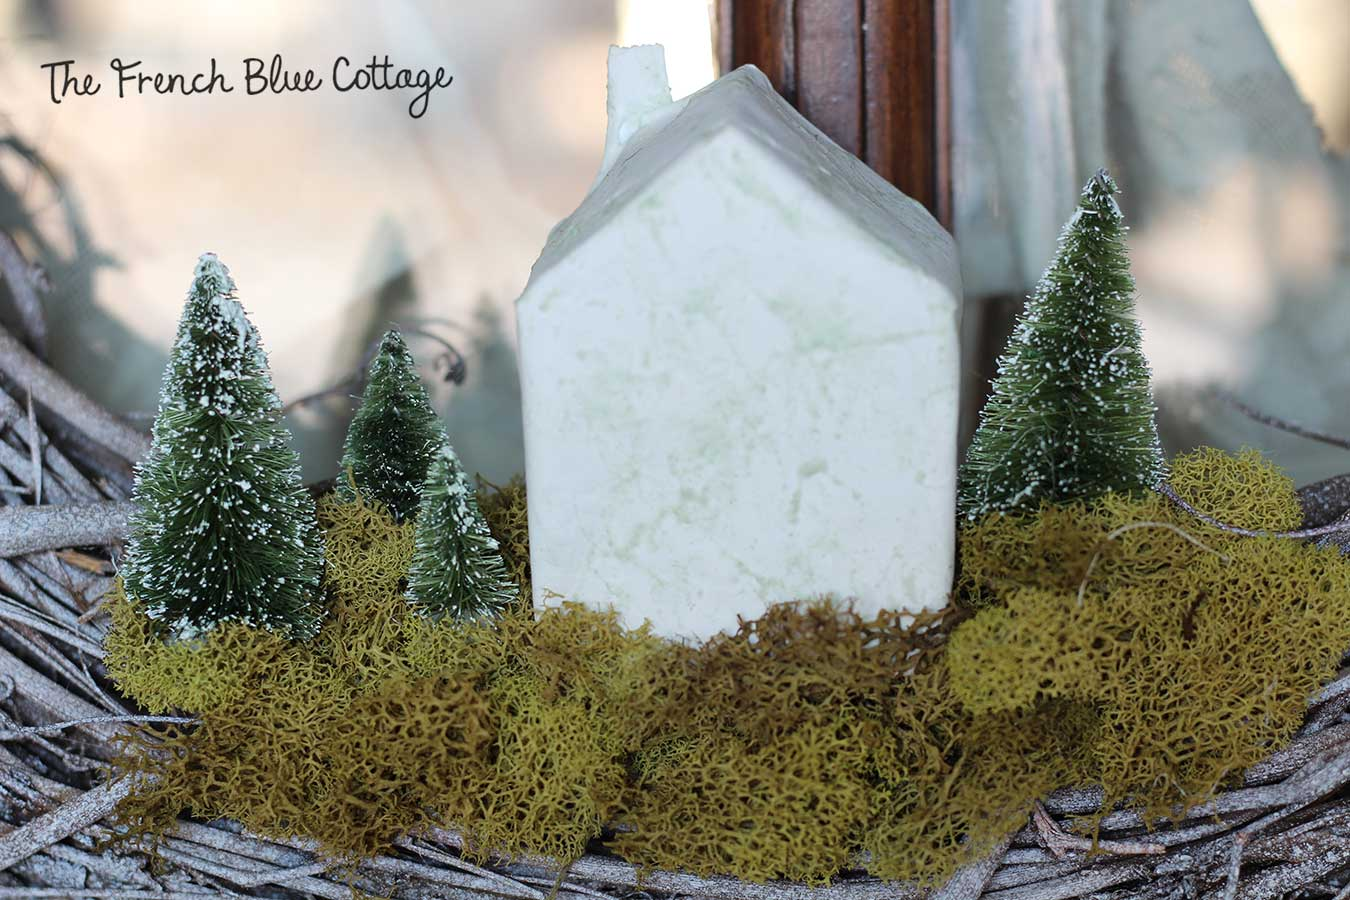 Tiny paper mâché house and bottle brush trees in a wreath.